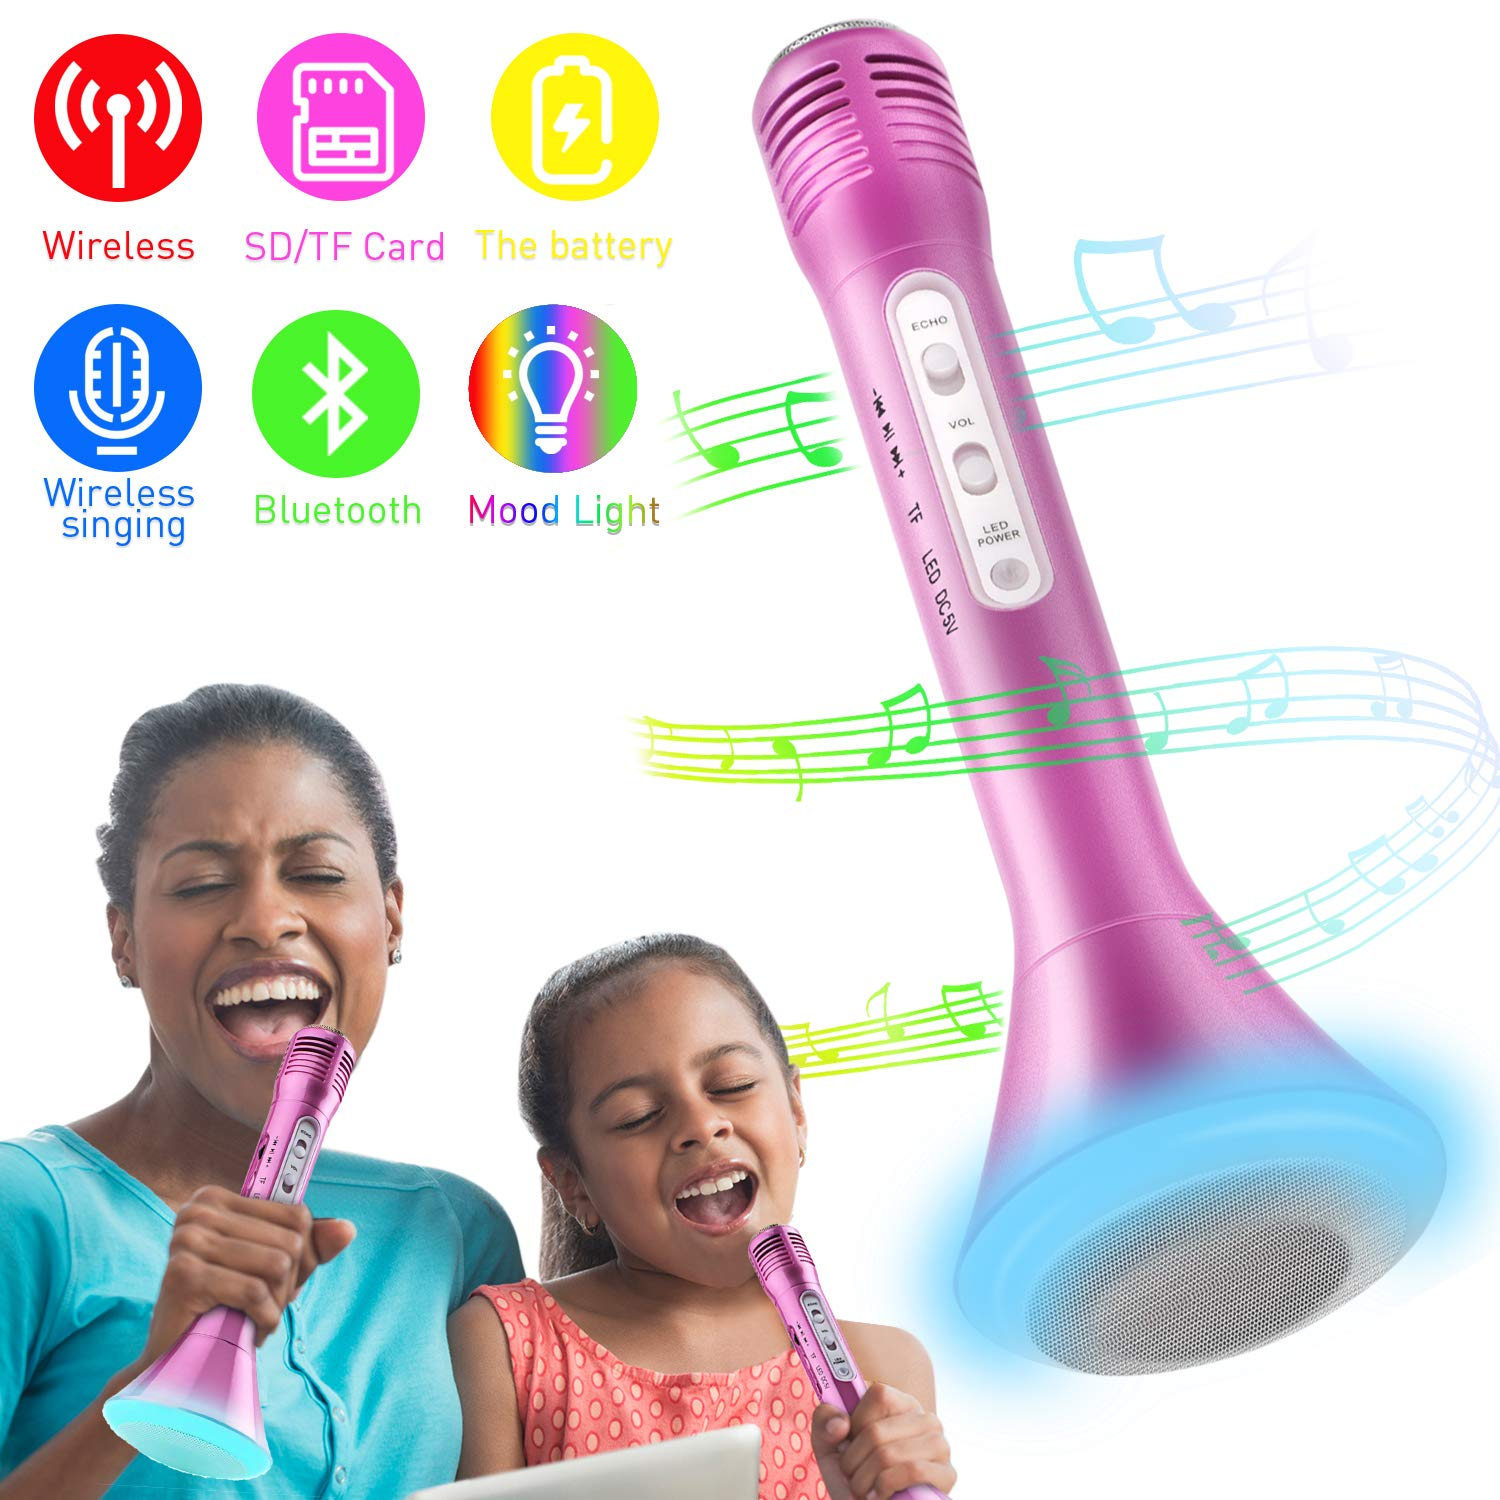 Wireless Karaoke Microphone, Kids Microphone with Bluetooth Speaker, Karaoke Mic Portable Karaoke Player Machine for Girls Boys Home Party Music Singing Playing MaGic-Store